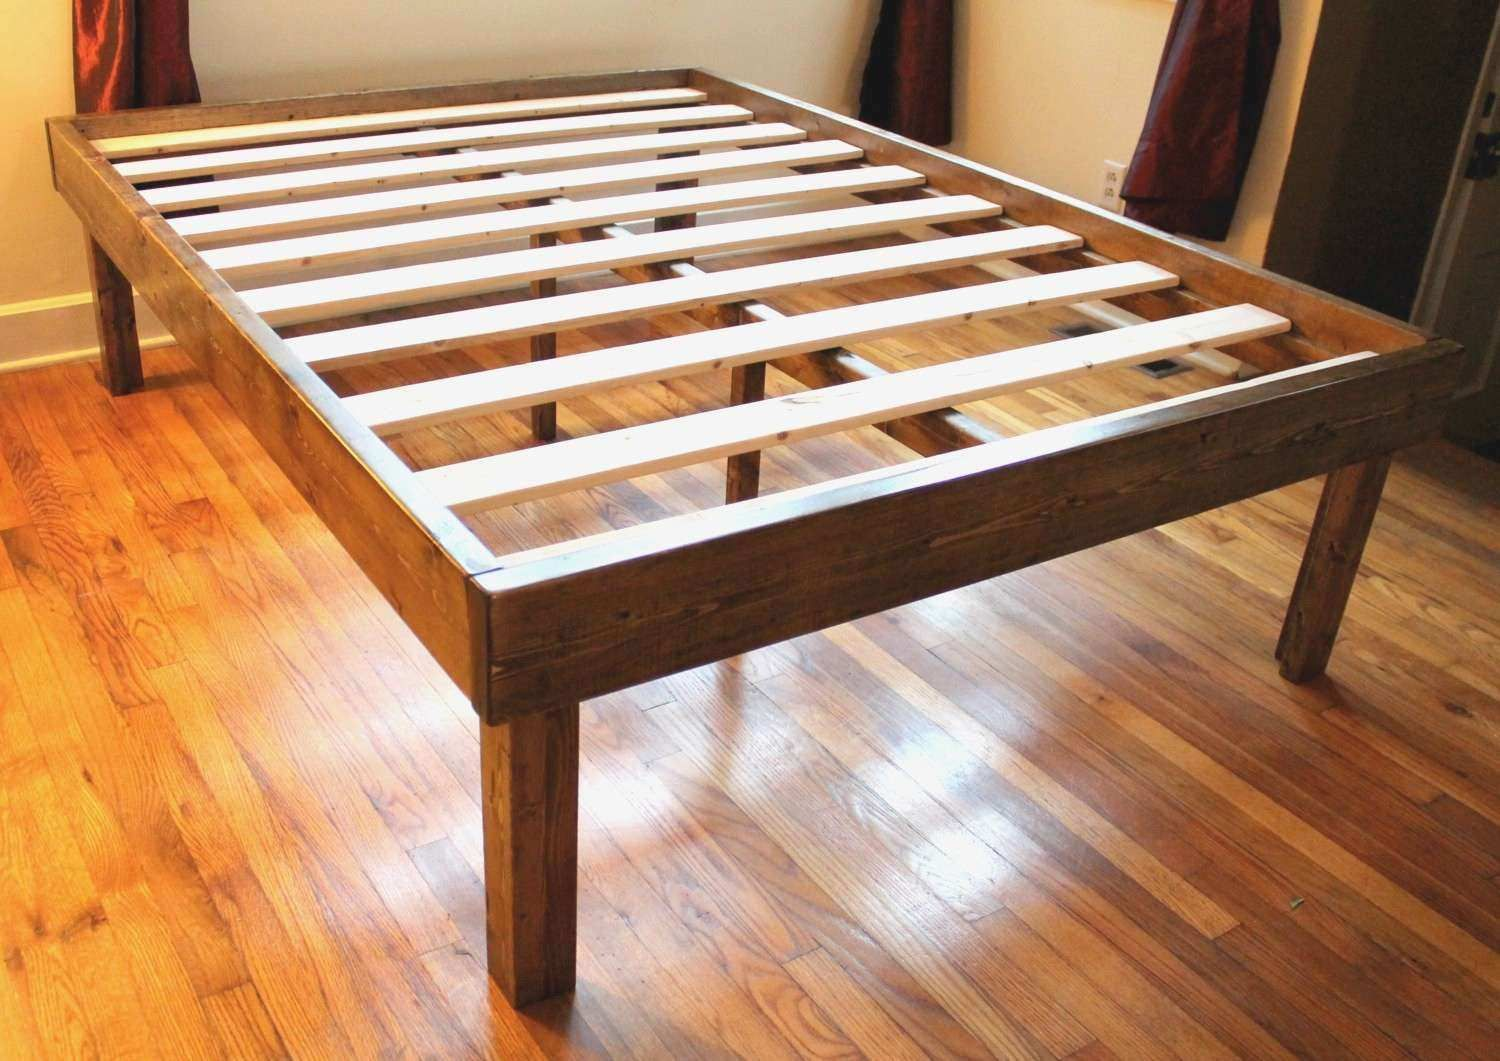 High Platform Bed Frame Queen New Bed Frames Wallpaper Hd Wooden Bed Frames Wood Bed Frame Queen Platform Bed Frame